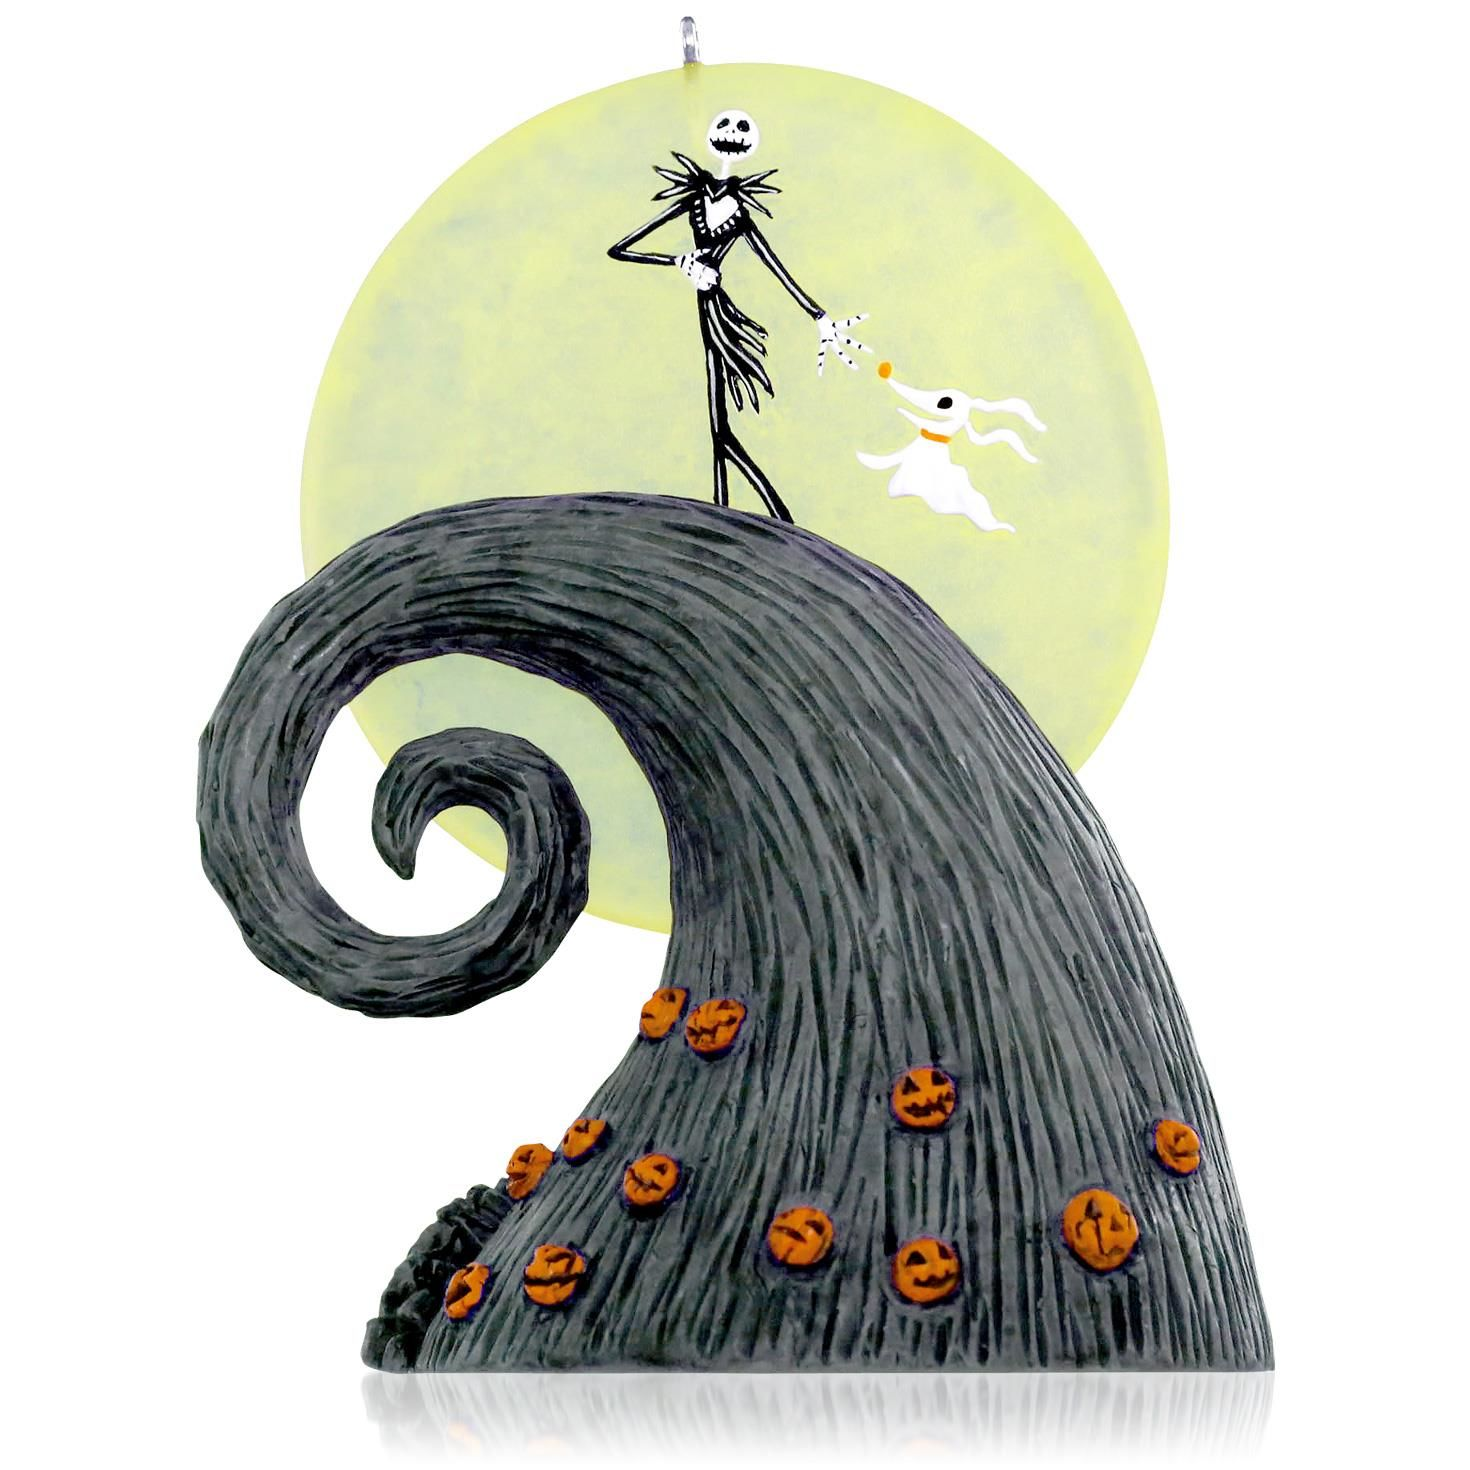 The nightmare before christmas ornaments - 2015 Here Comes The Pumpkin King Hallmark Ornament Hooked On Hallmark Ornaments